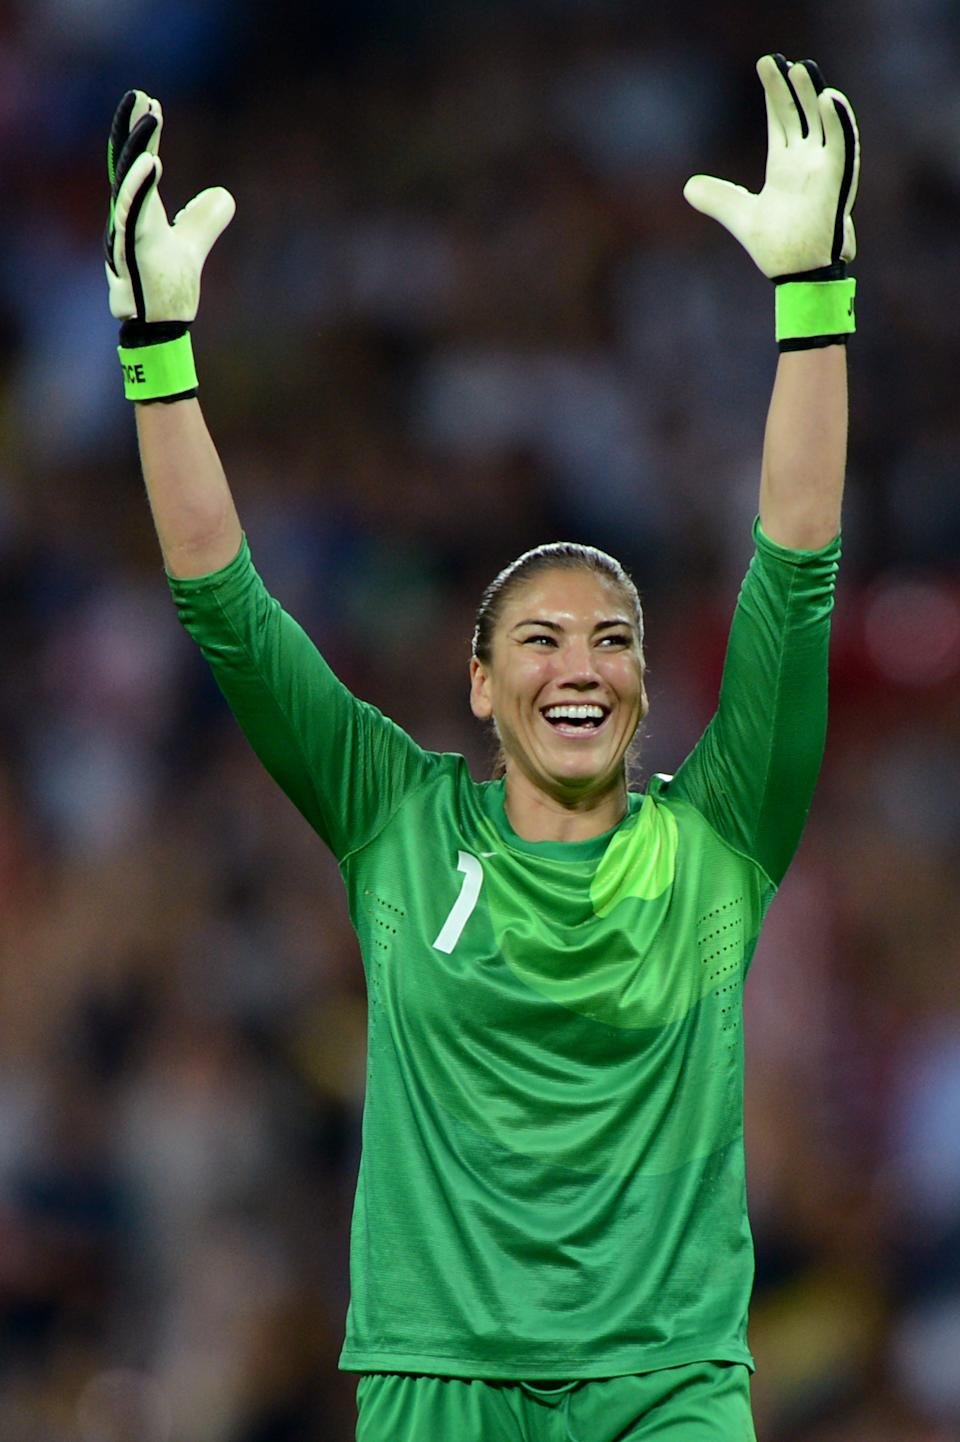 LONDON, ENGLAND - AUGUST 09: Hope Solo #1 of United States reacts after a goal by Carli Lloyd #10 in the second halfagainst Japan during the Women's Football gold medal match on Day 13 of the London 2012 Olympic Games at Wembley Stadium on August 9, 2012 in London, England. (Photo by Michael Regan/Getty Images)